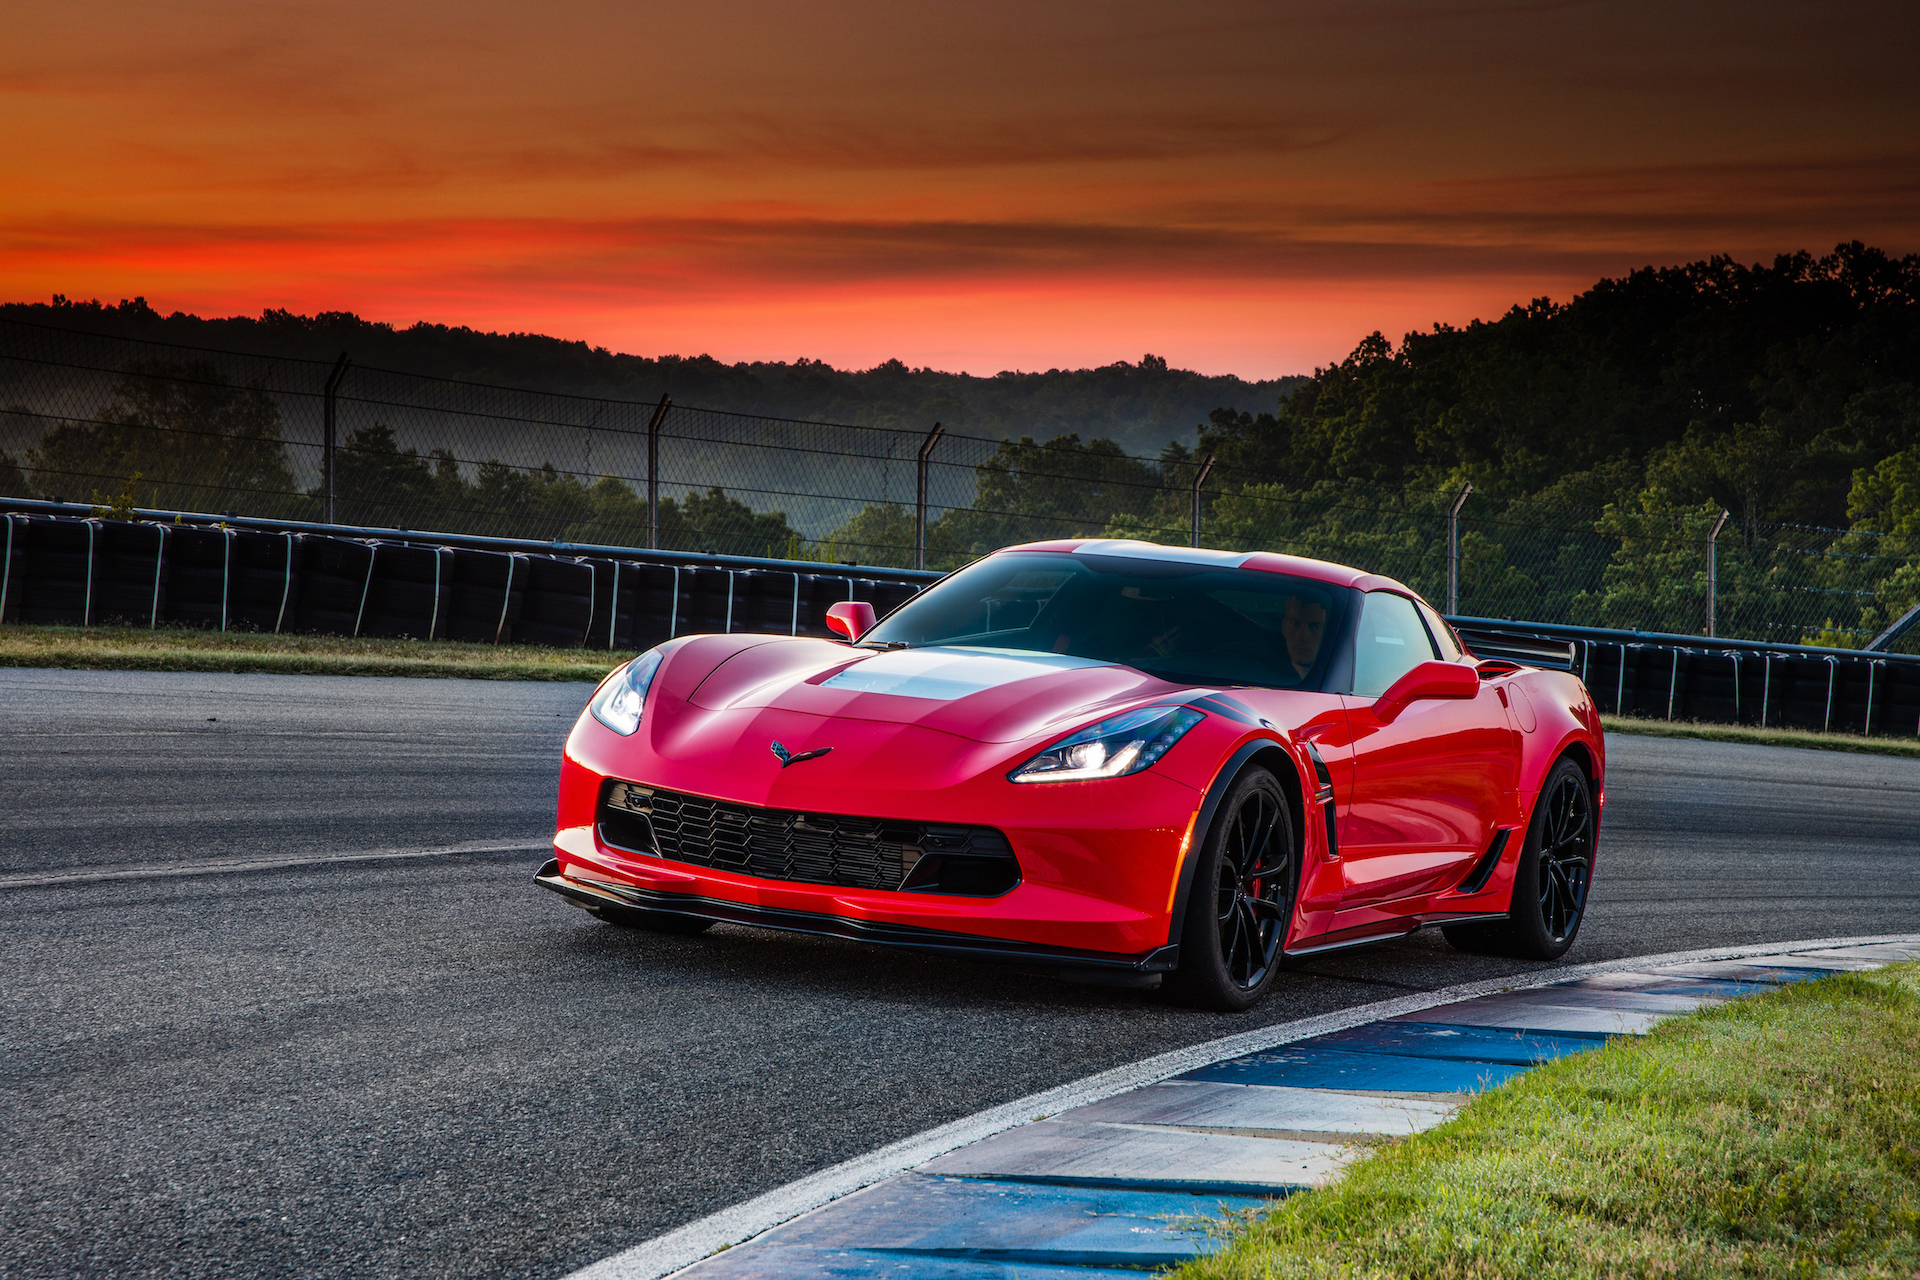 2017 chevrolet corvette grand sport first drive review. Black Bedroom Furniture Sets. Home Design Ideas